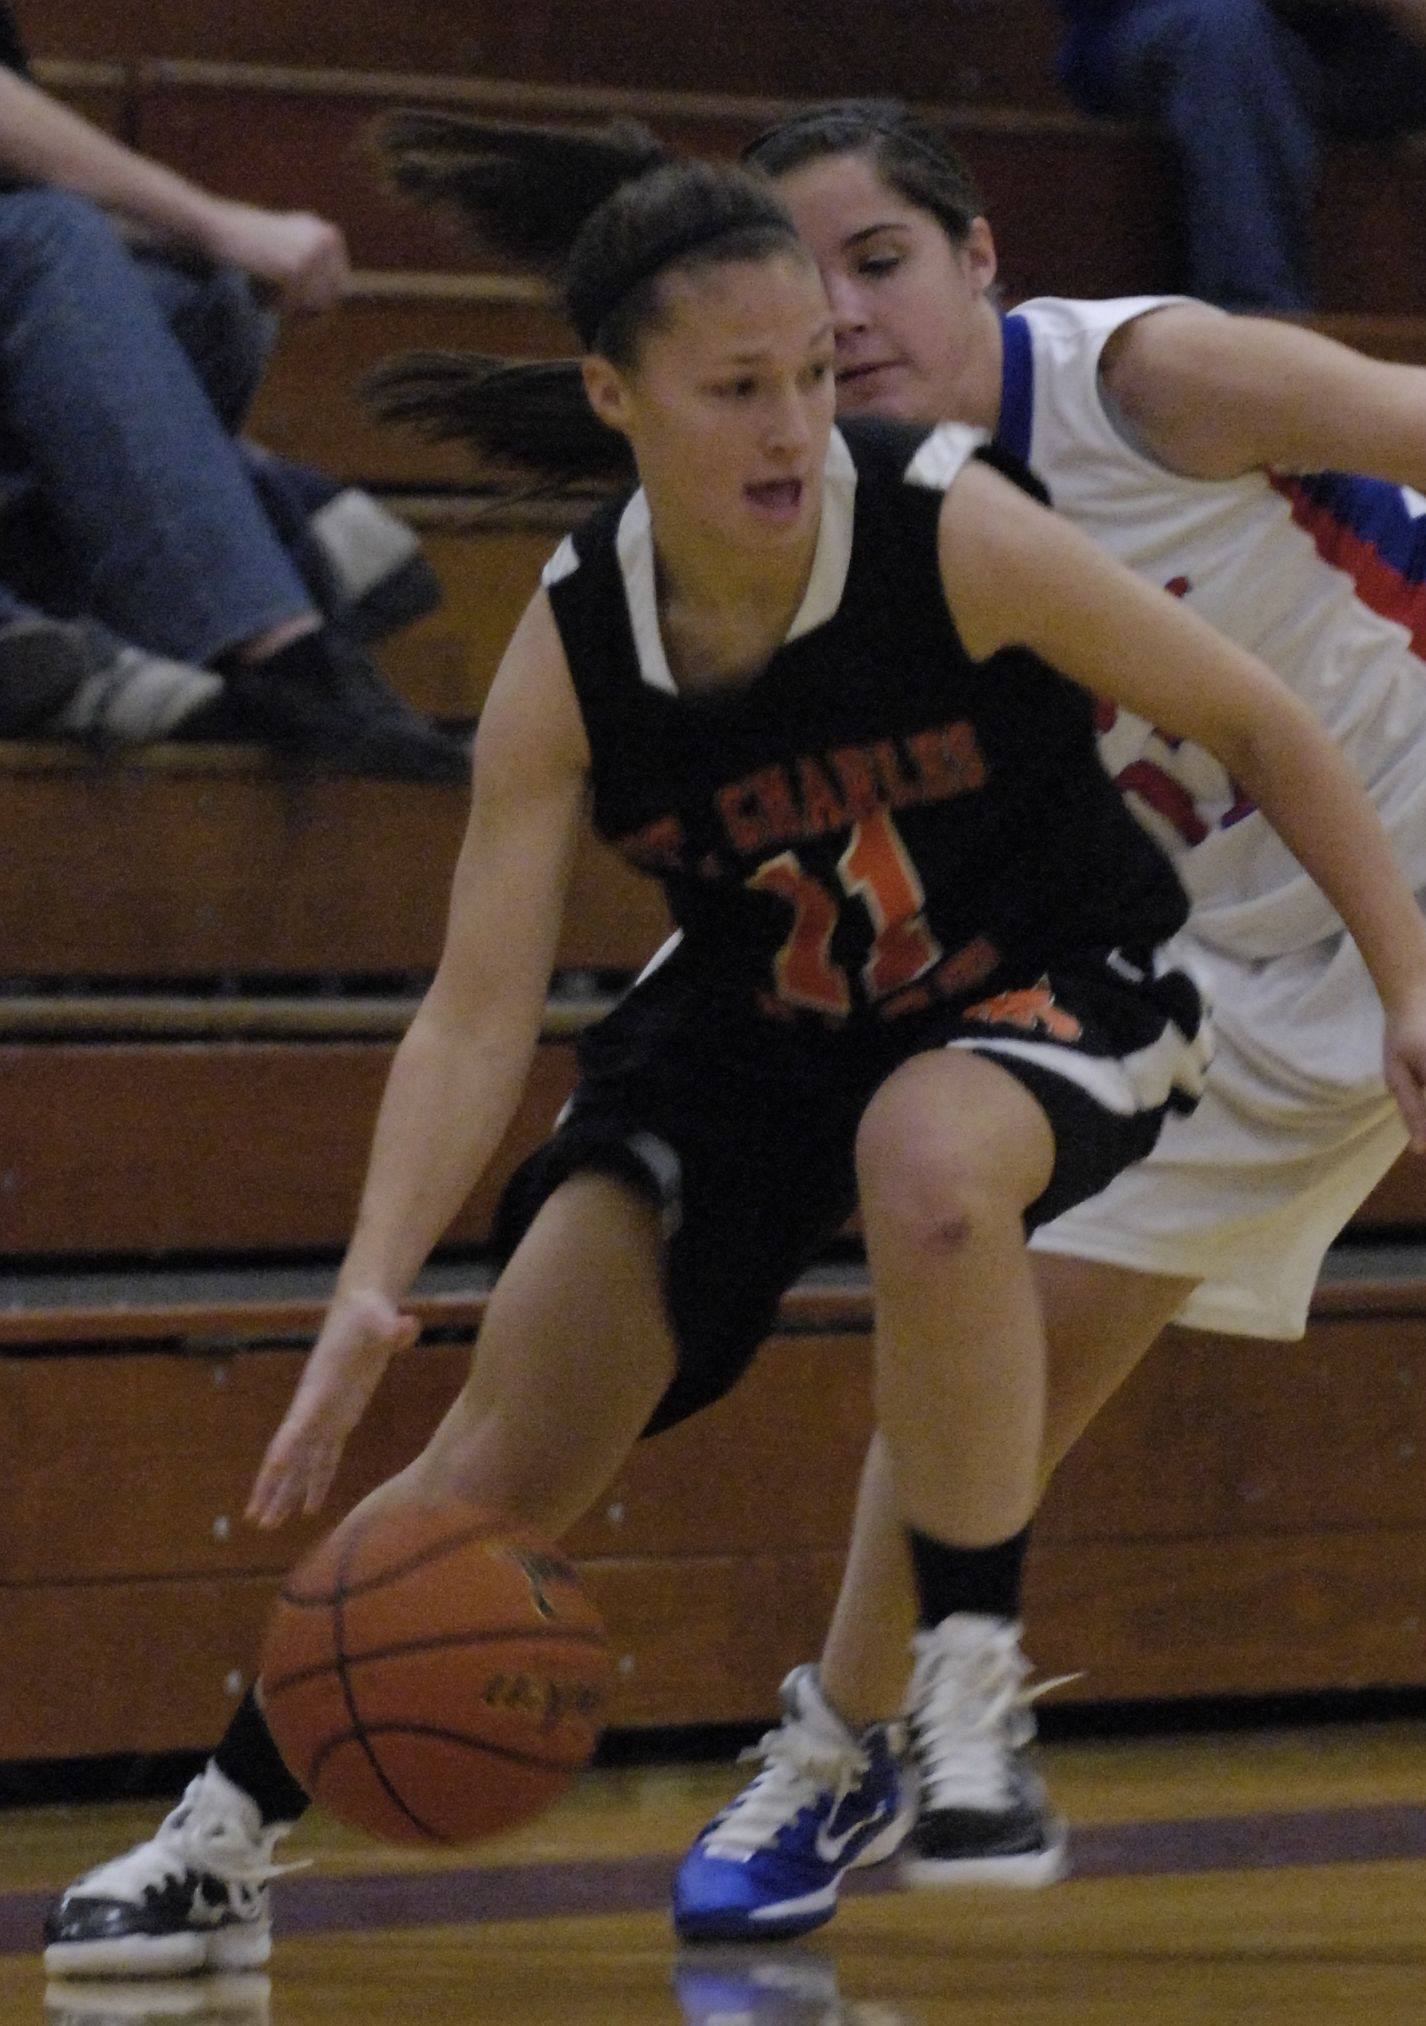 Images from the Glenbard South vs. St. Charles East girls basketball game Monday, December 20, 2010.